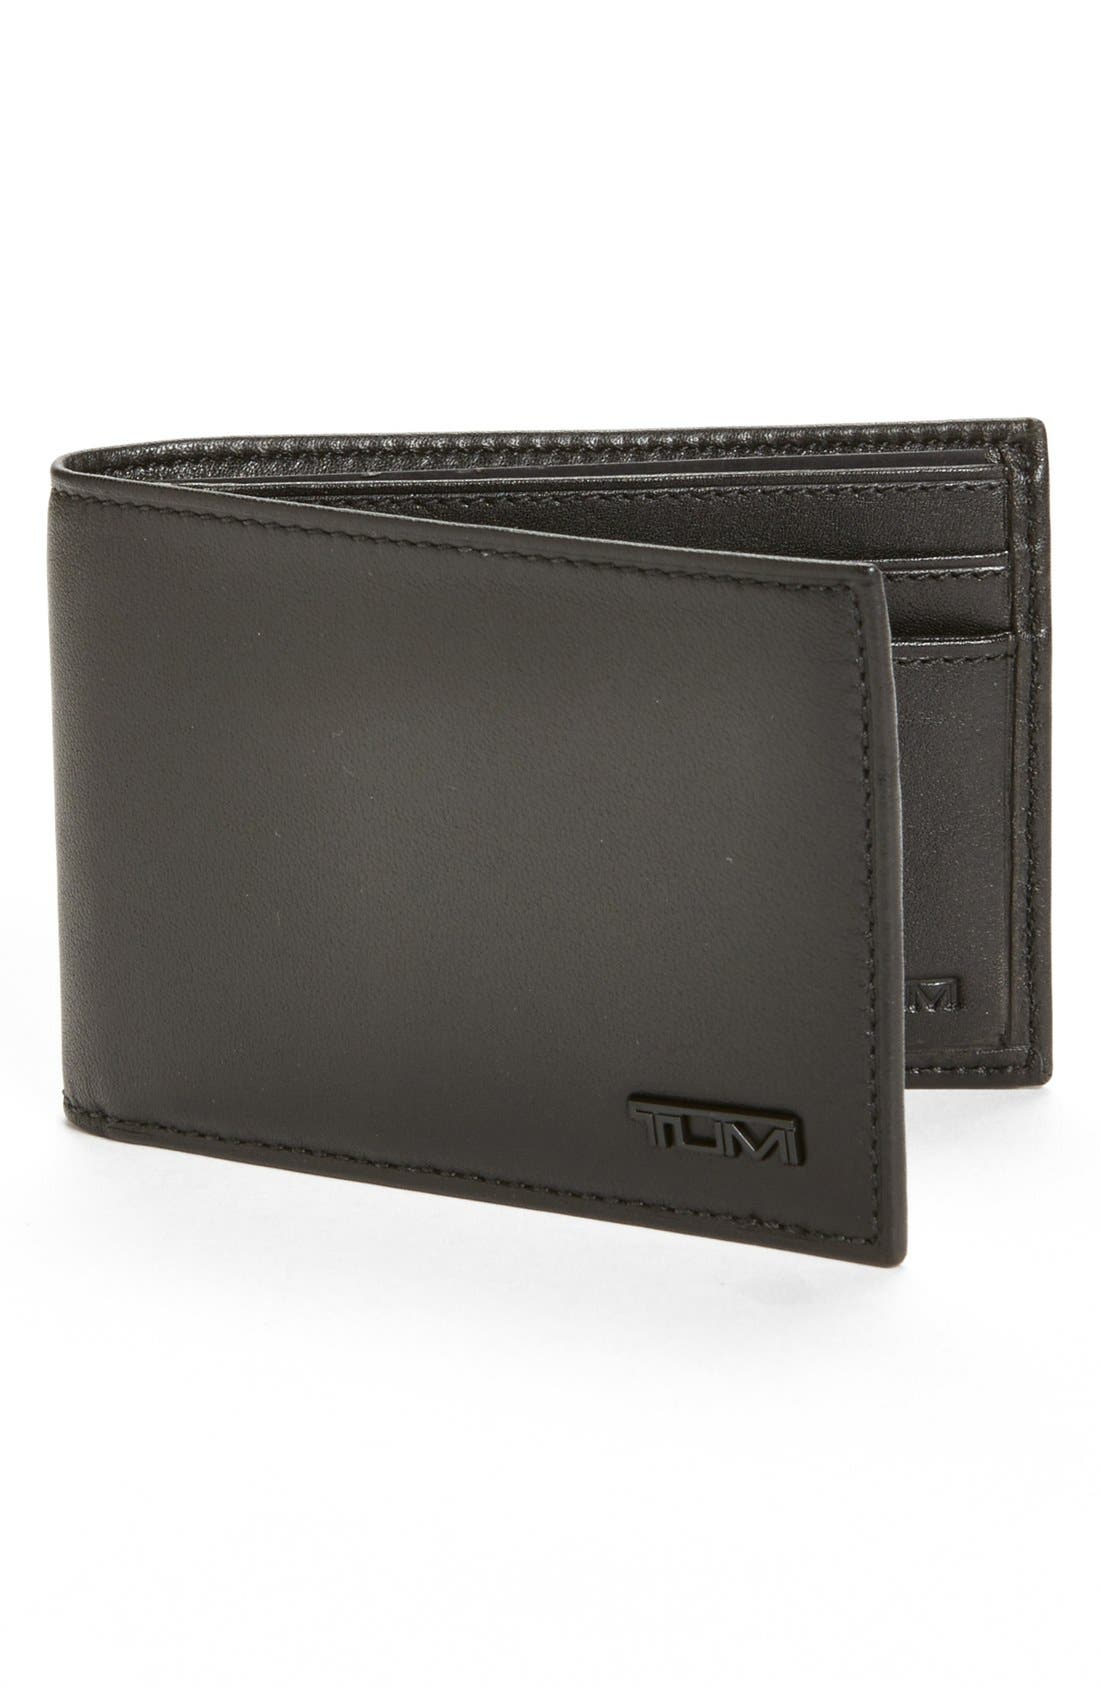 Main Image - Tumi 'Delta' Slim Single Billfold